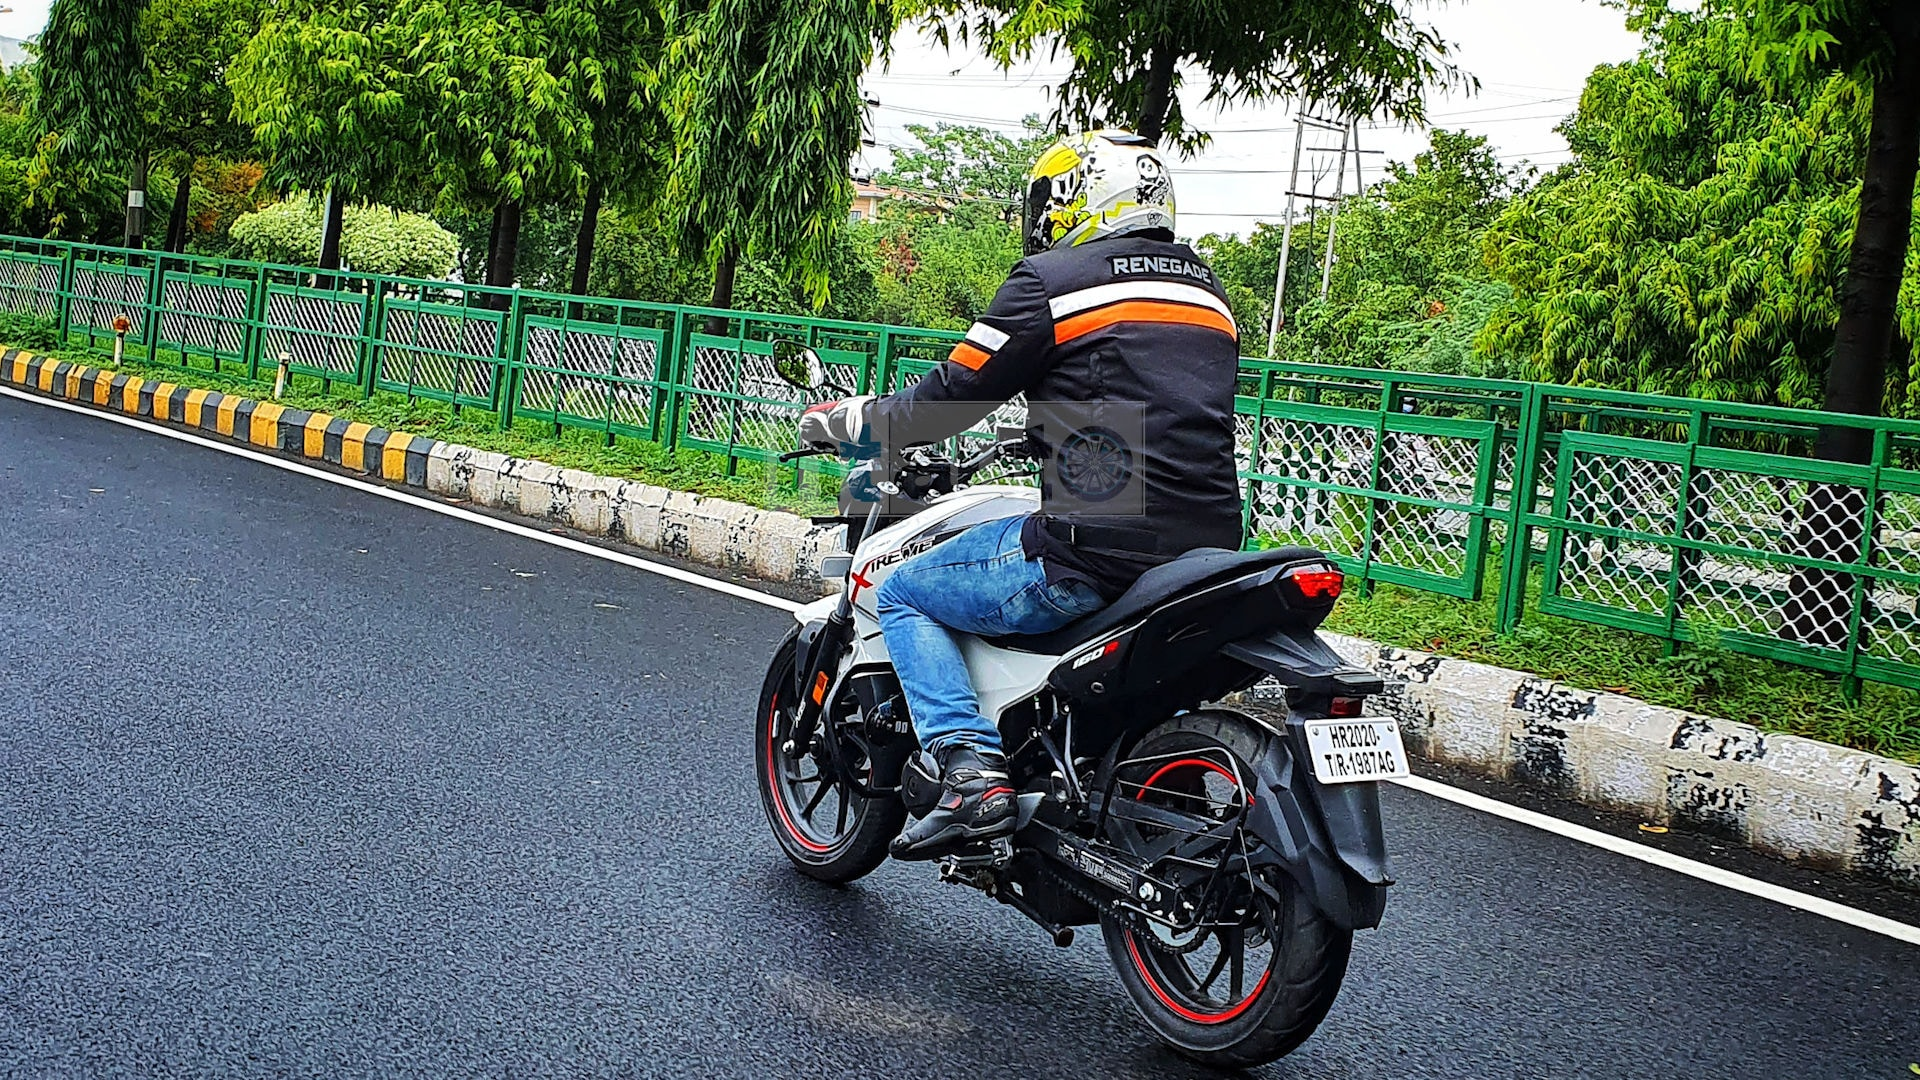 Hero Xtreme 160R has all the right ingredients that make it a strong contender in its segment. Its pricing starts at just under  <span class='webrupee'>₹</span>1 lakh (ex-showroom). Picture Courtesy: Sabyasachi Dasgupta